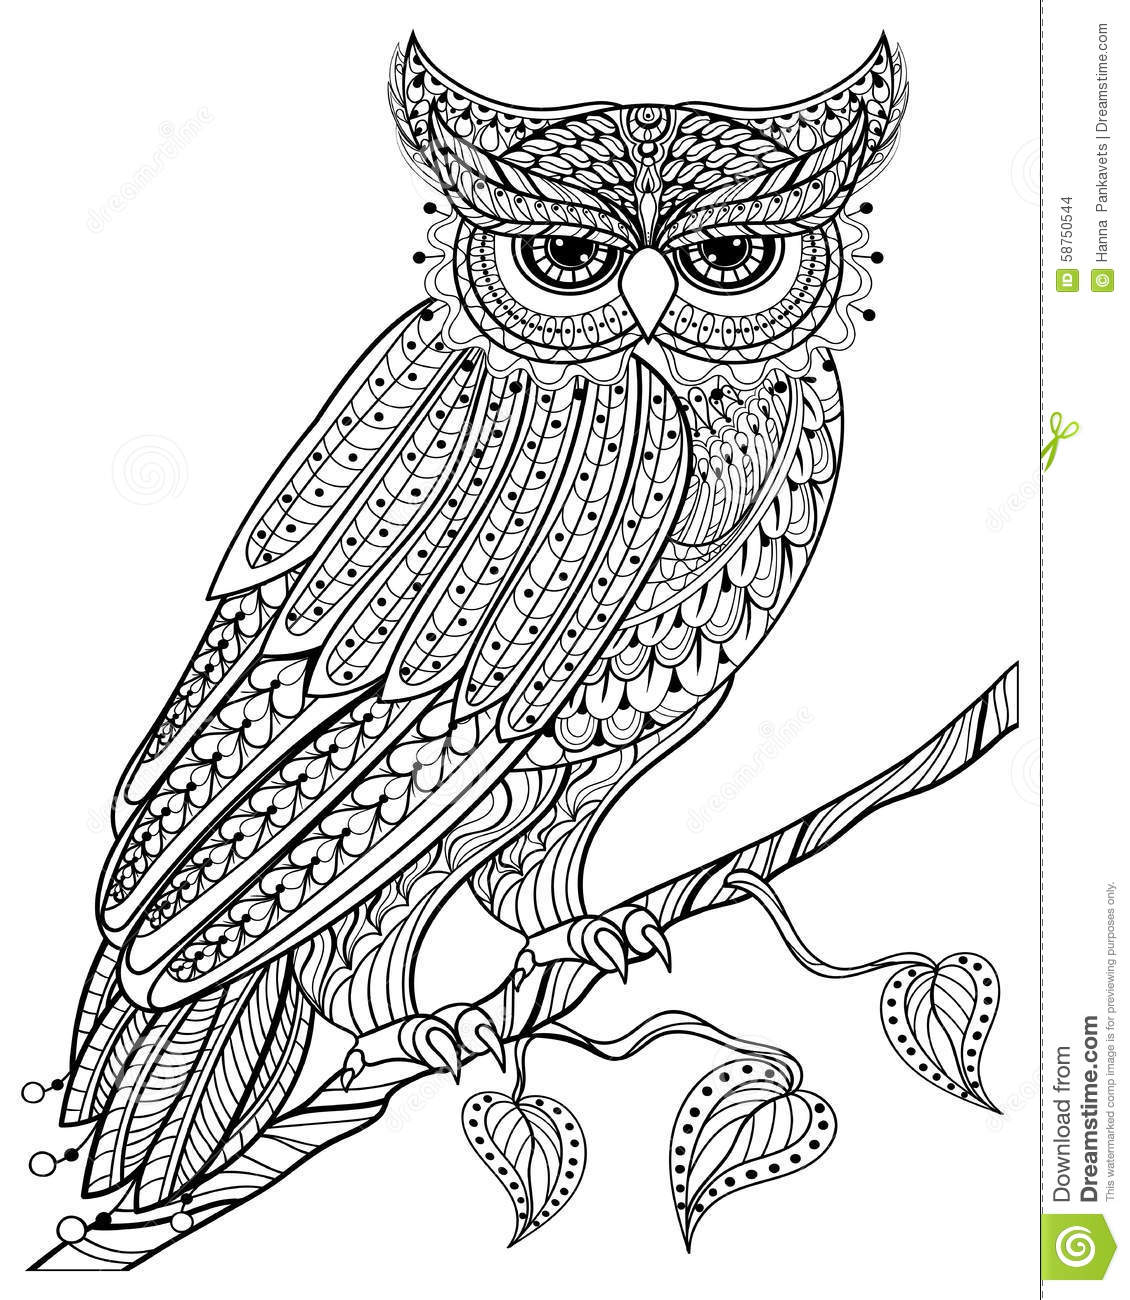 Hand Drawn Magic Owl Sitting On Branch For Adult Anti